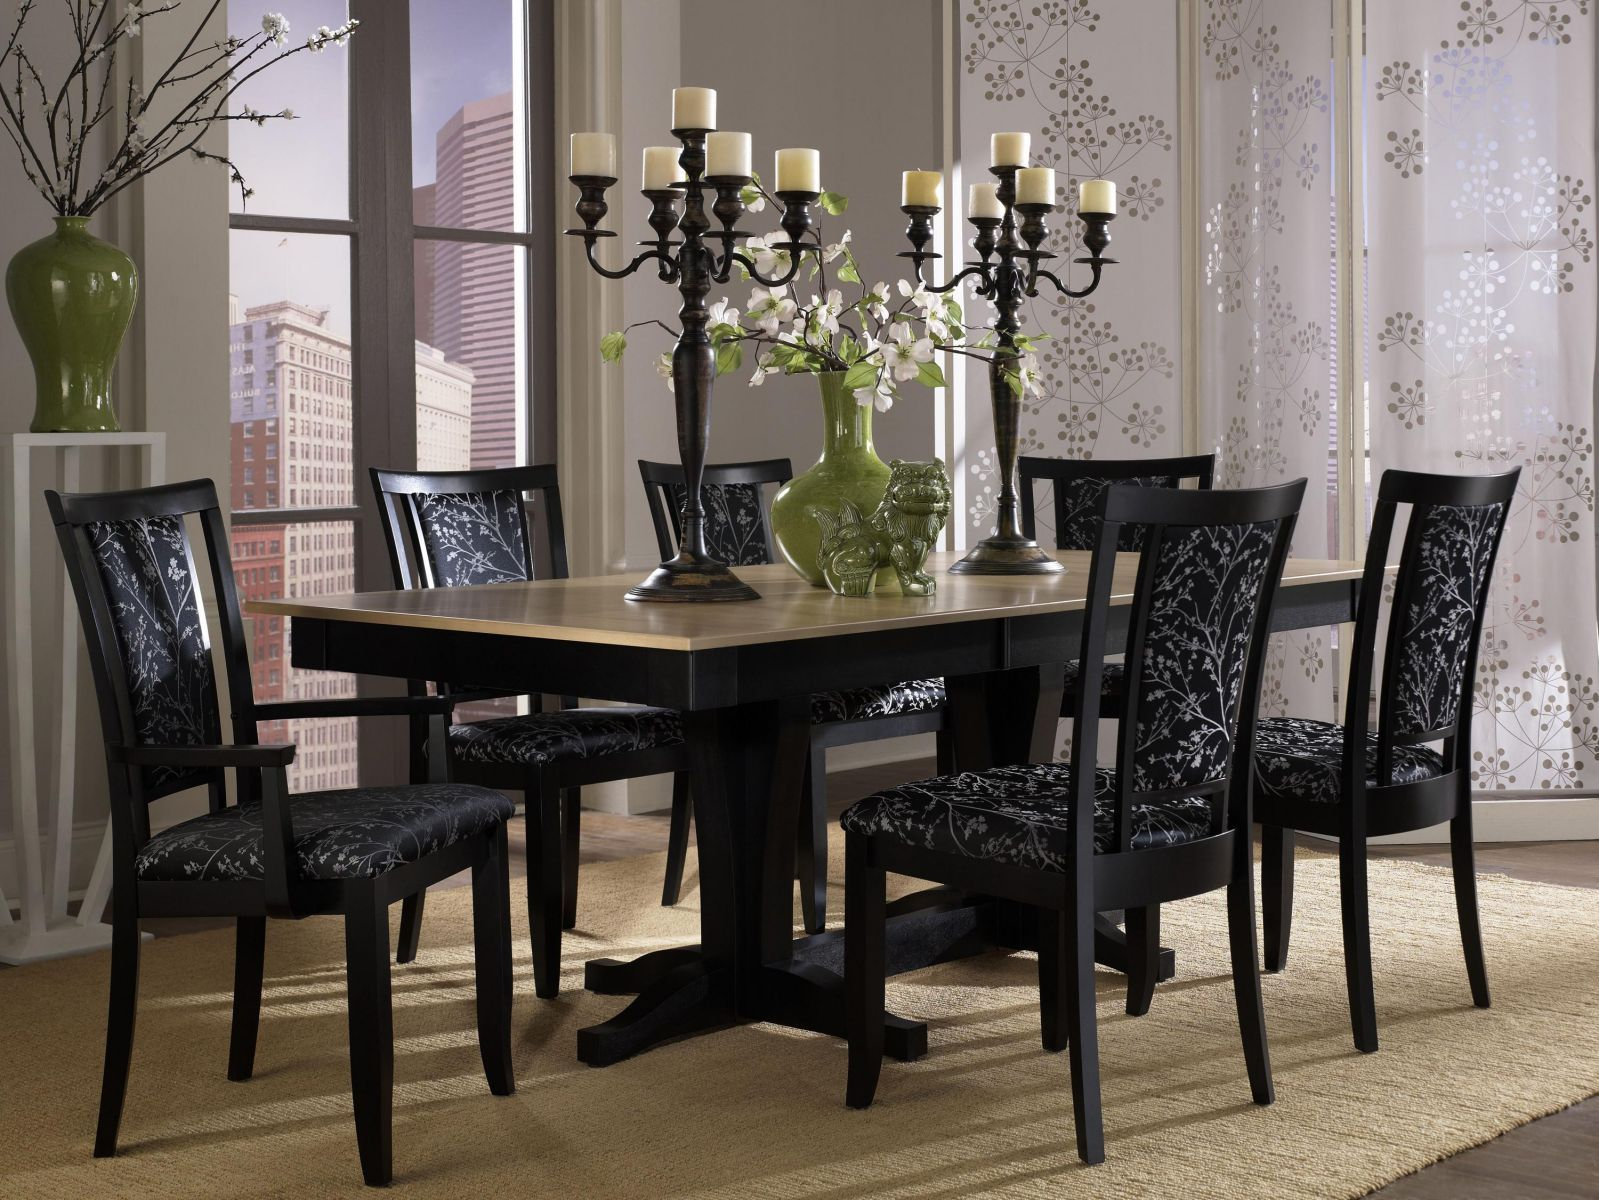 Contemporary Round Dining Room Tables Classy Stylish Dining Room Set Idea With Black Floral Upholstered Chairs Design Decoration